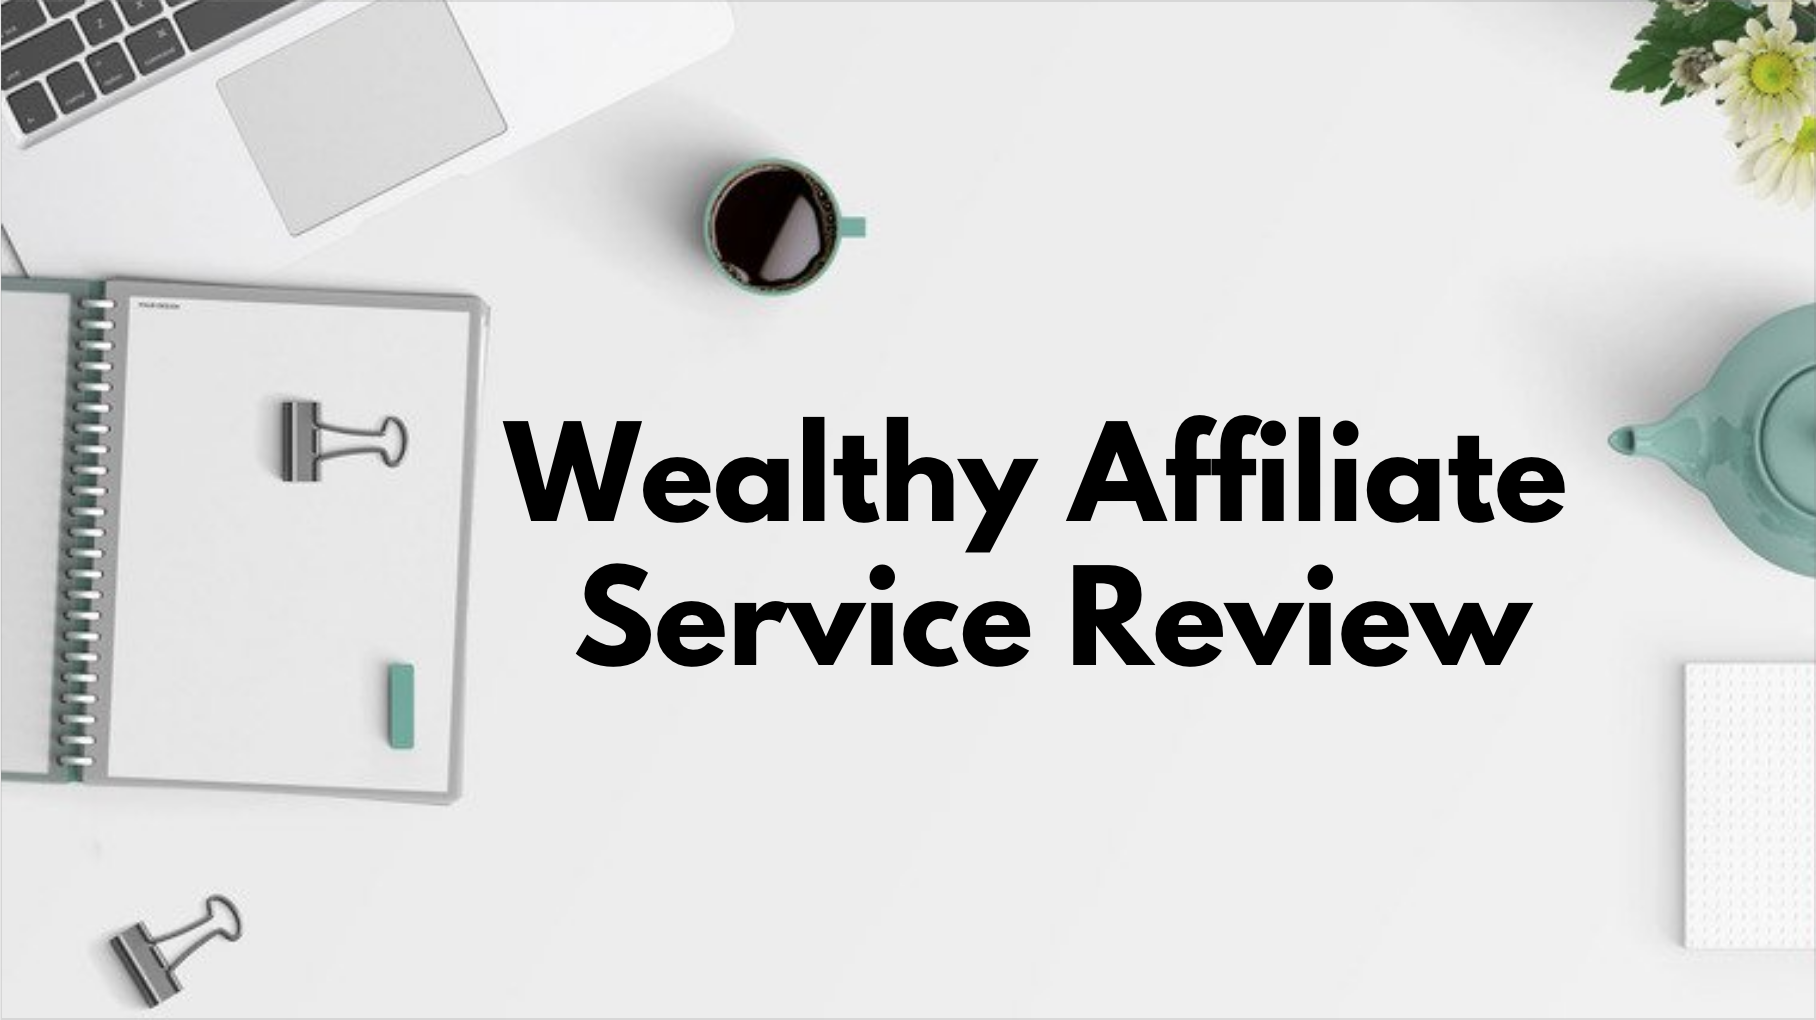 Wealthy Affiliate Service Review